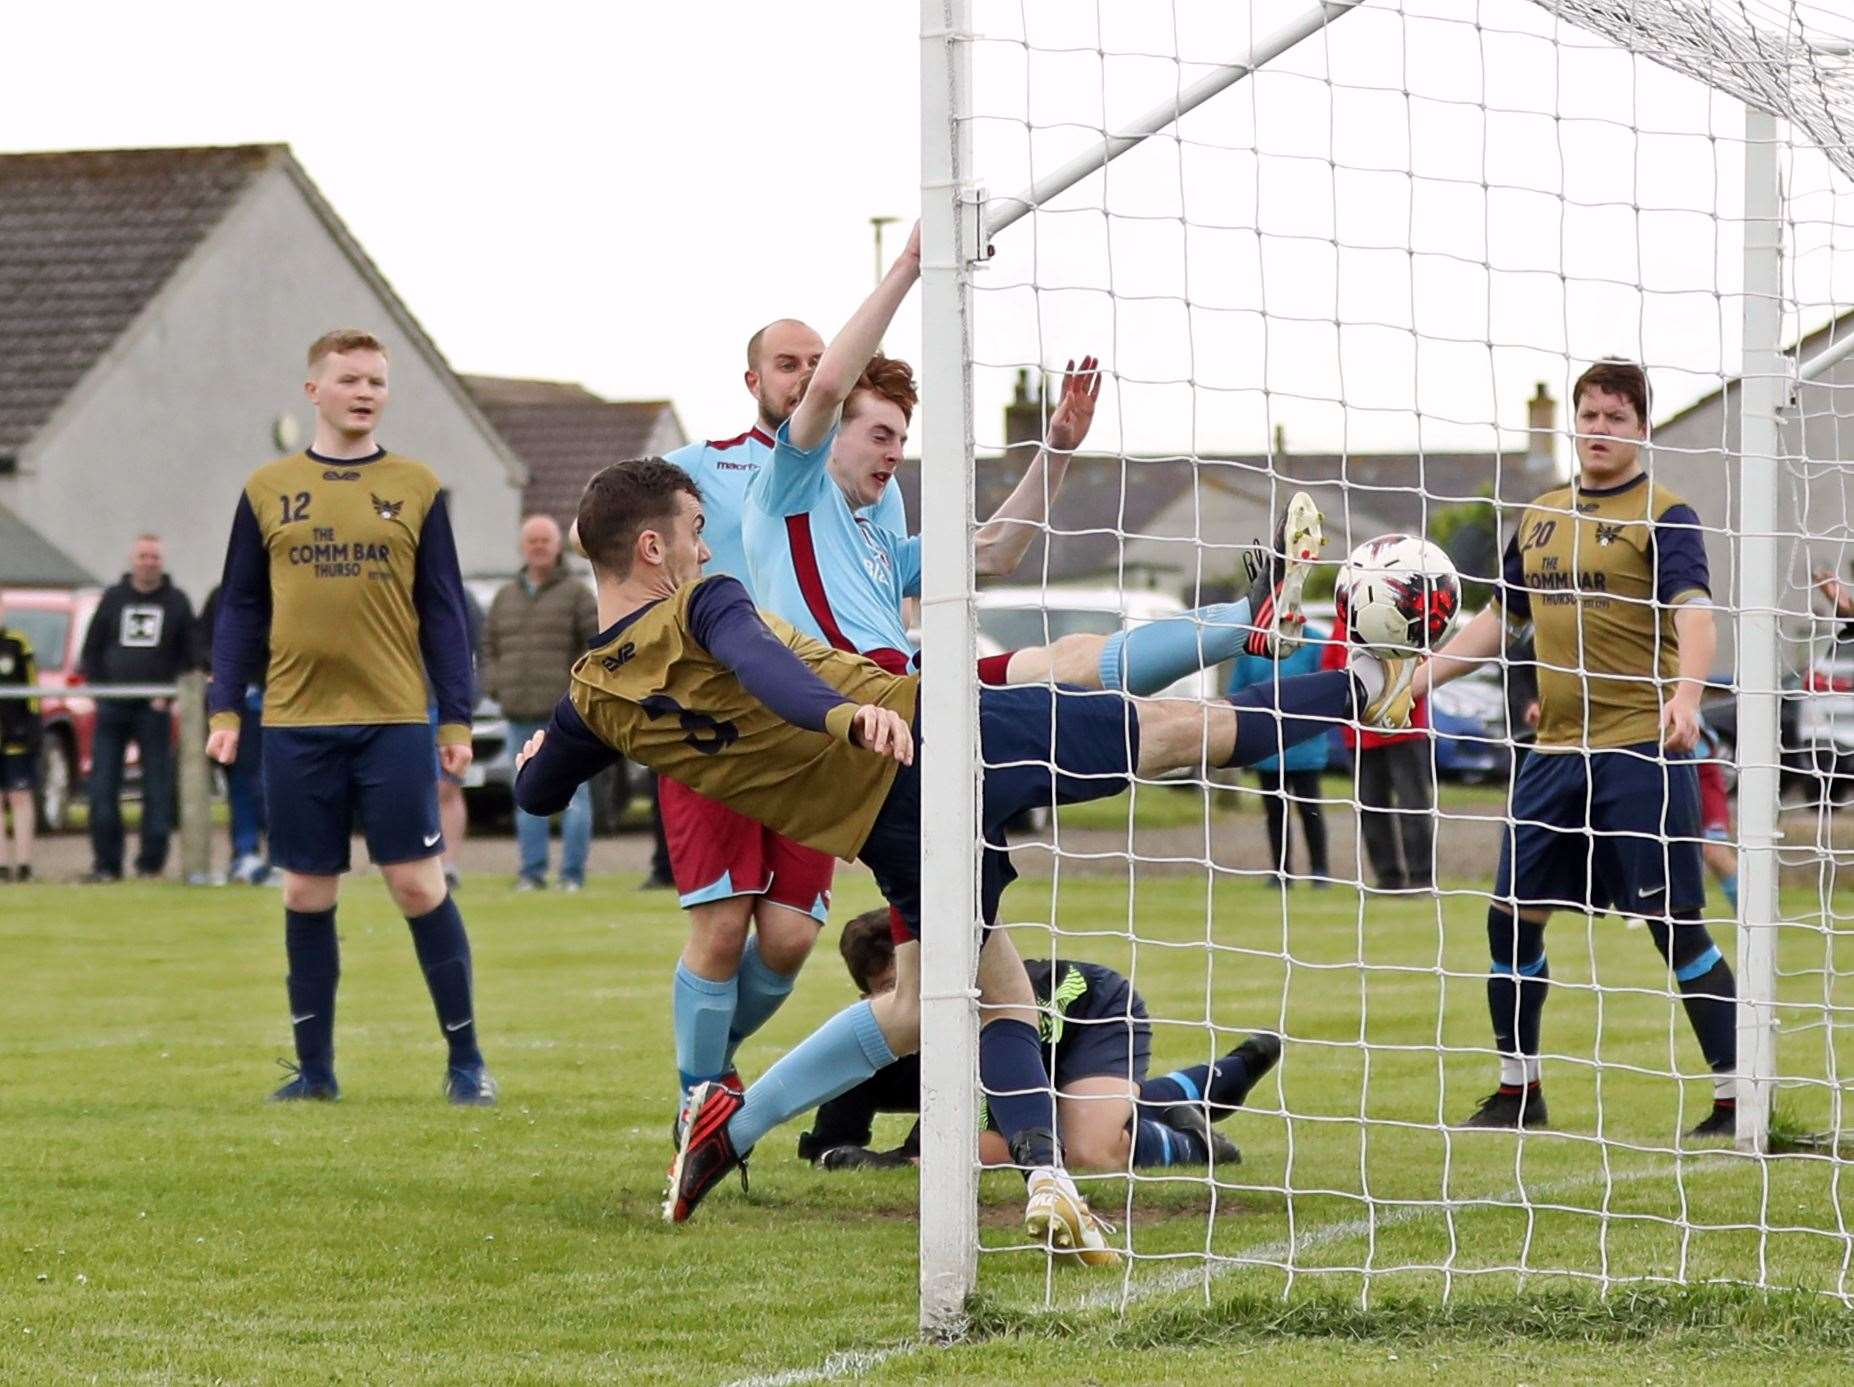 Pentland United's Roddy Innes forces the ball over the line to score equaliser, despite the efforts of High Ormlie Hotspur defender Ian Ross. Picture: James Gunn